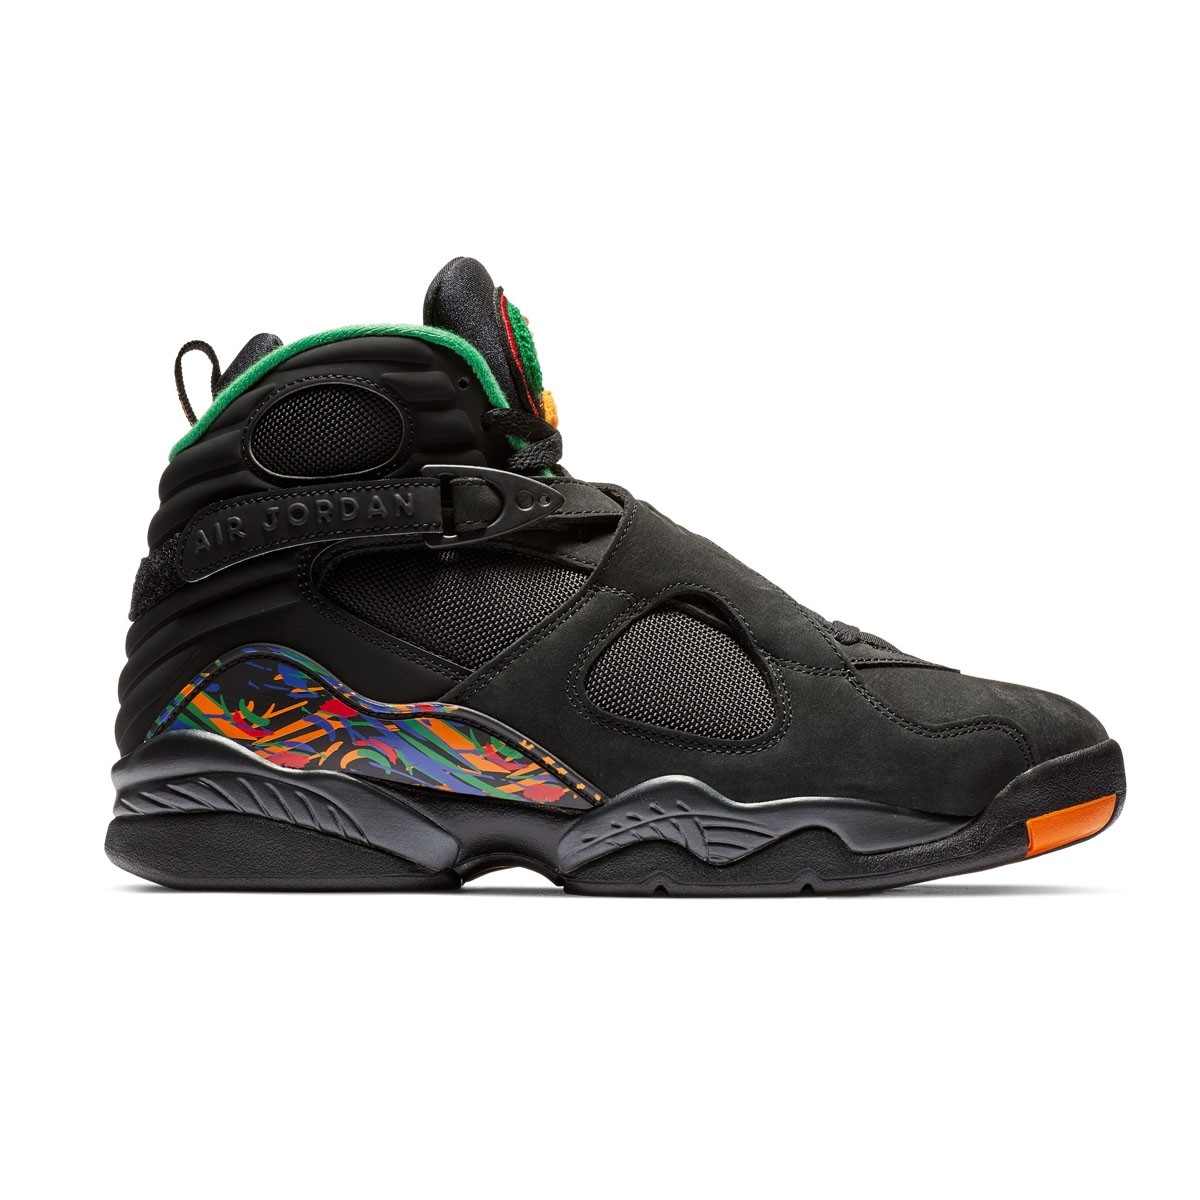 new style f7803 fbc4e Buy Air Jordan 8 Retro  Air Raid  Basketball shoes   sneakers